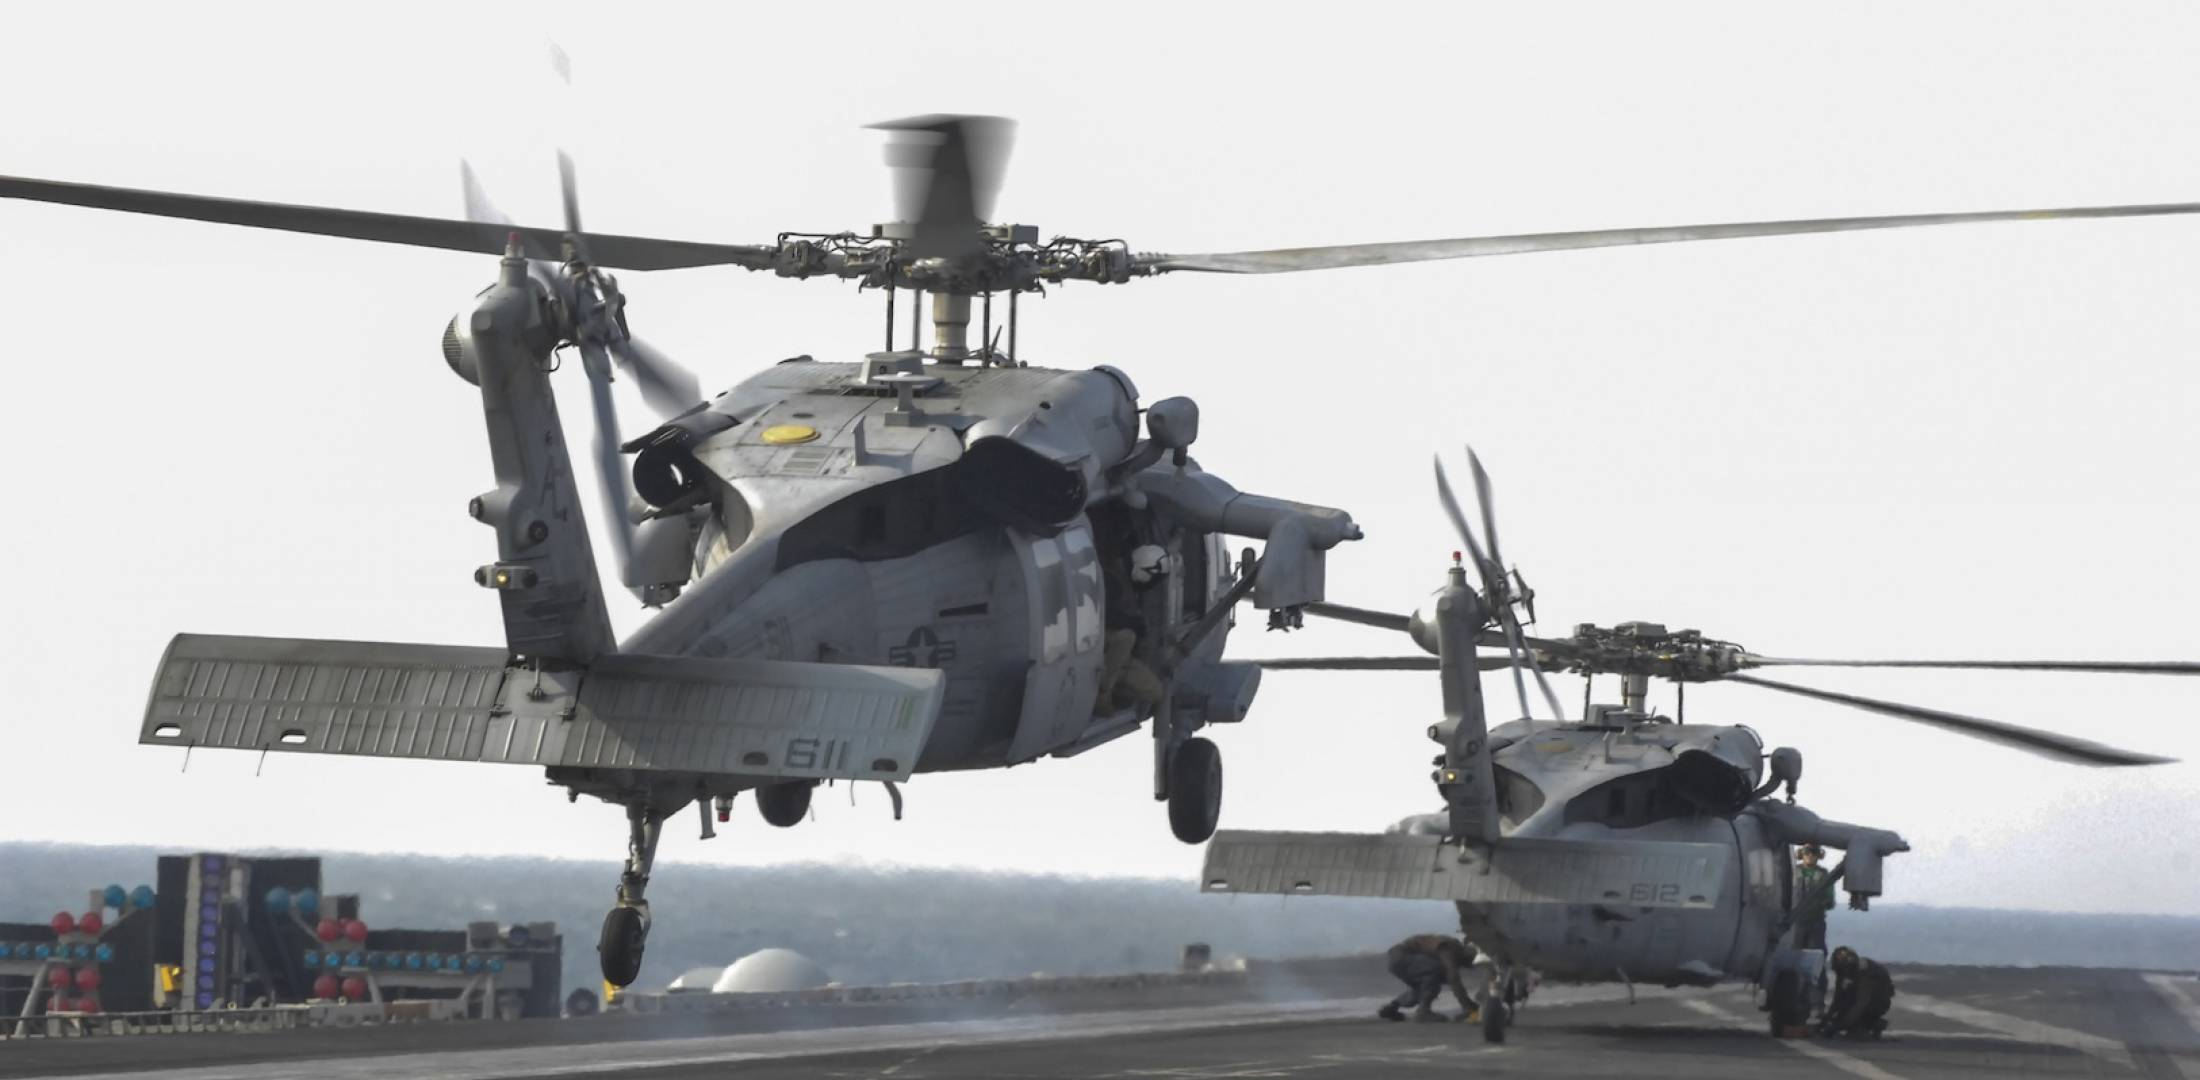 U.S. Navy MH-60S Seahawk helicopters